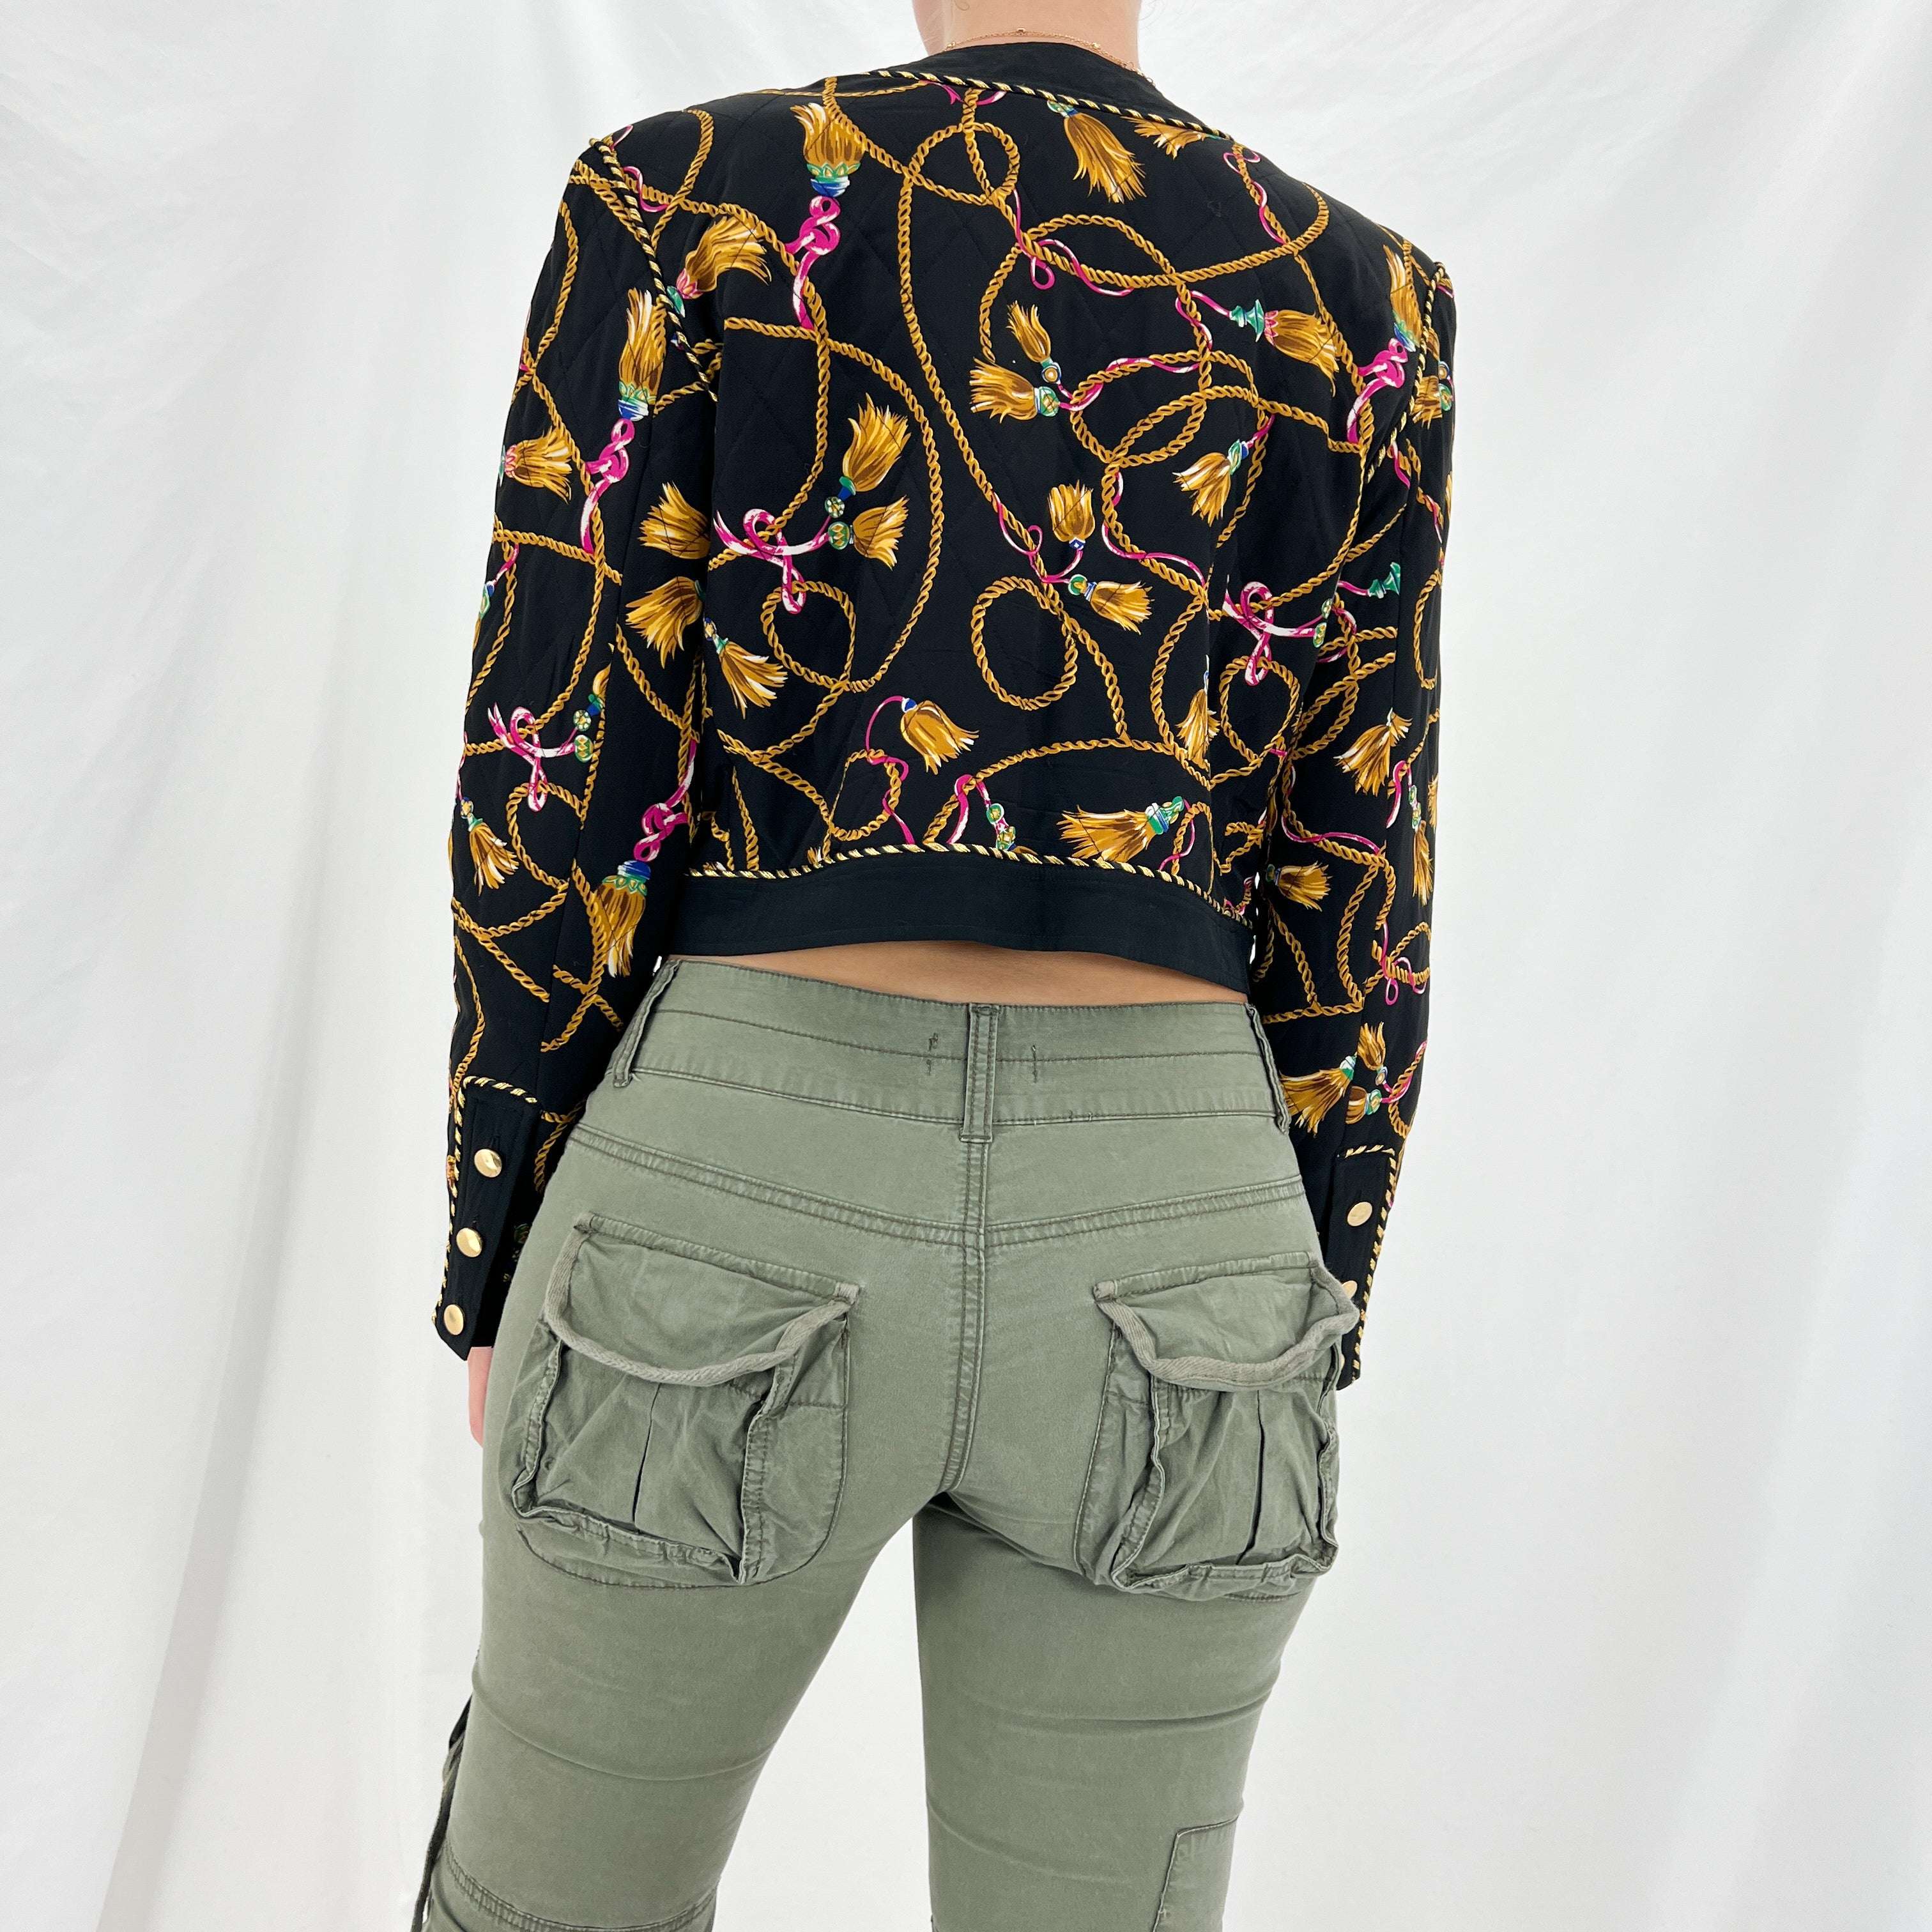 90s Black Maxi Dress W/ Gold Hardware Cut Out Sleeves [M]